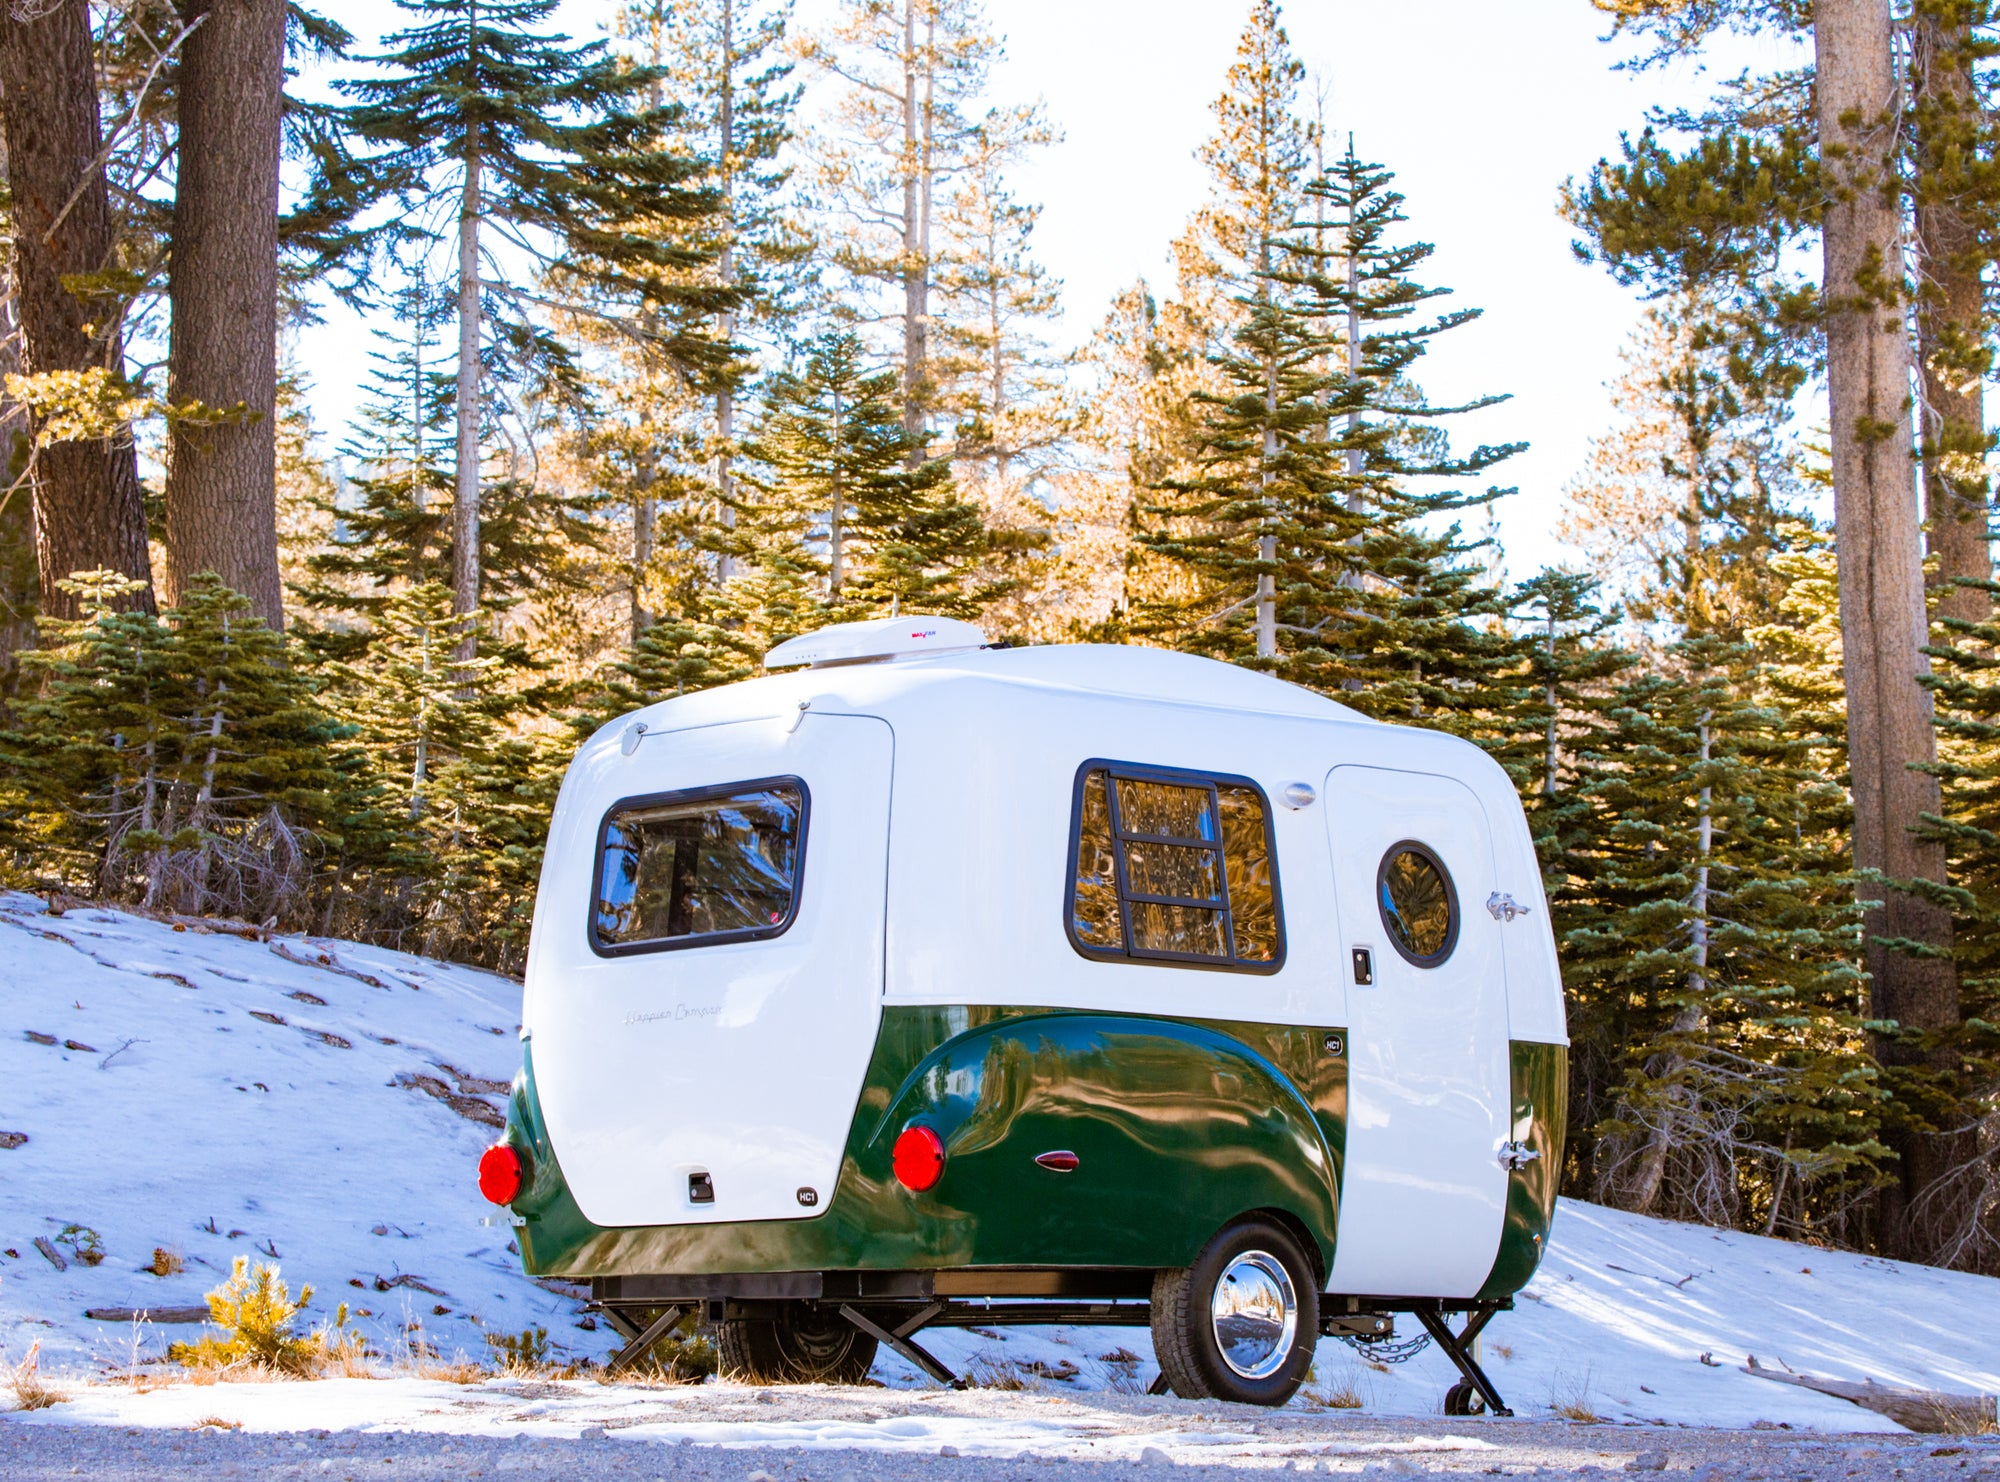 Prepare Your Camper for Winter